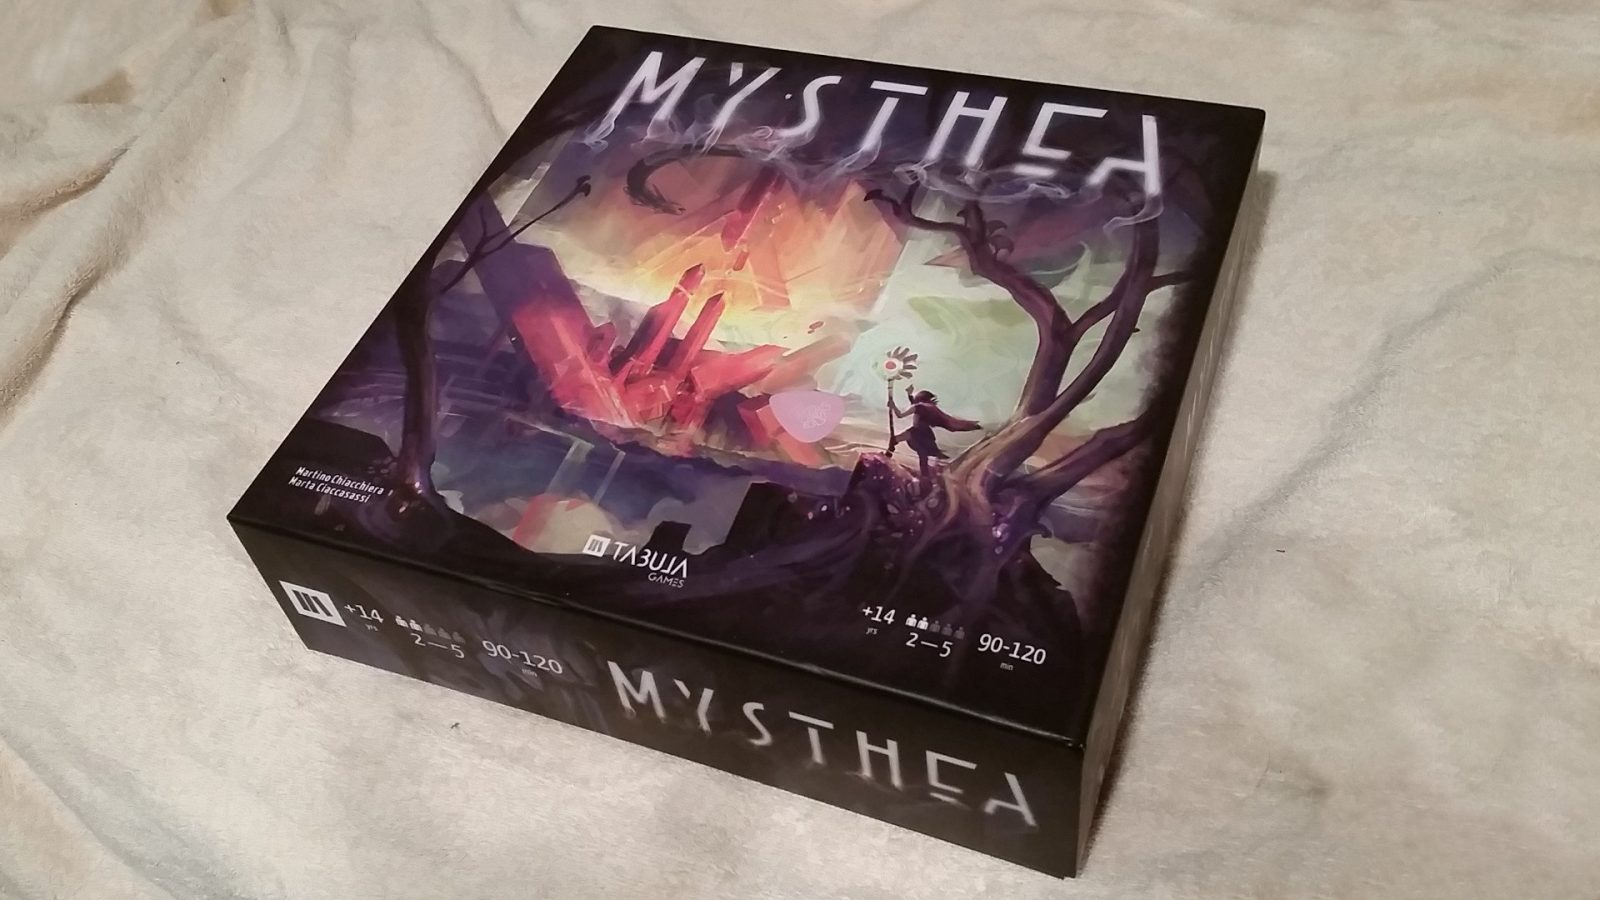 Mysthea Review – Epic Battles and Potent Powers